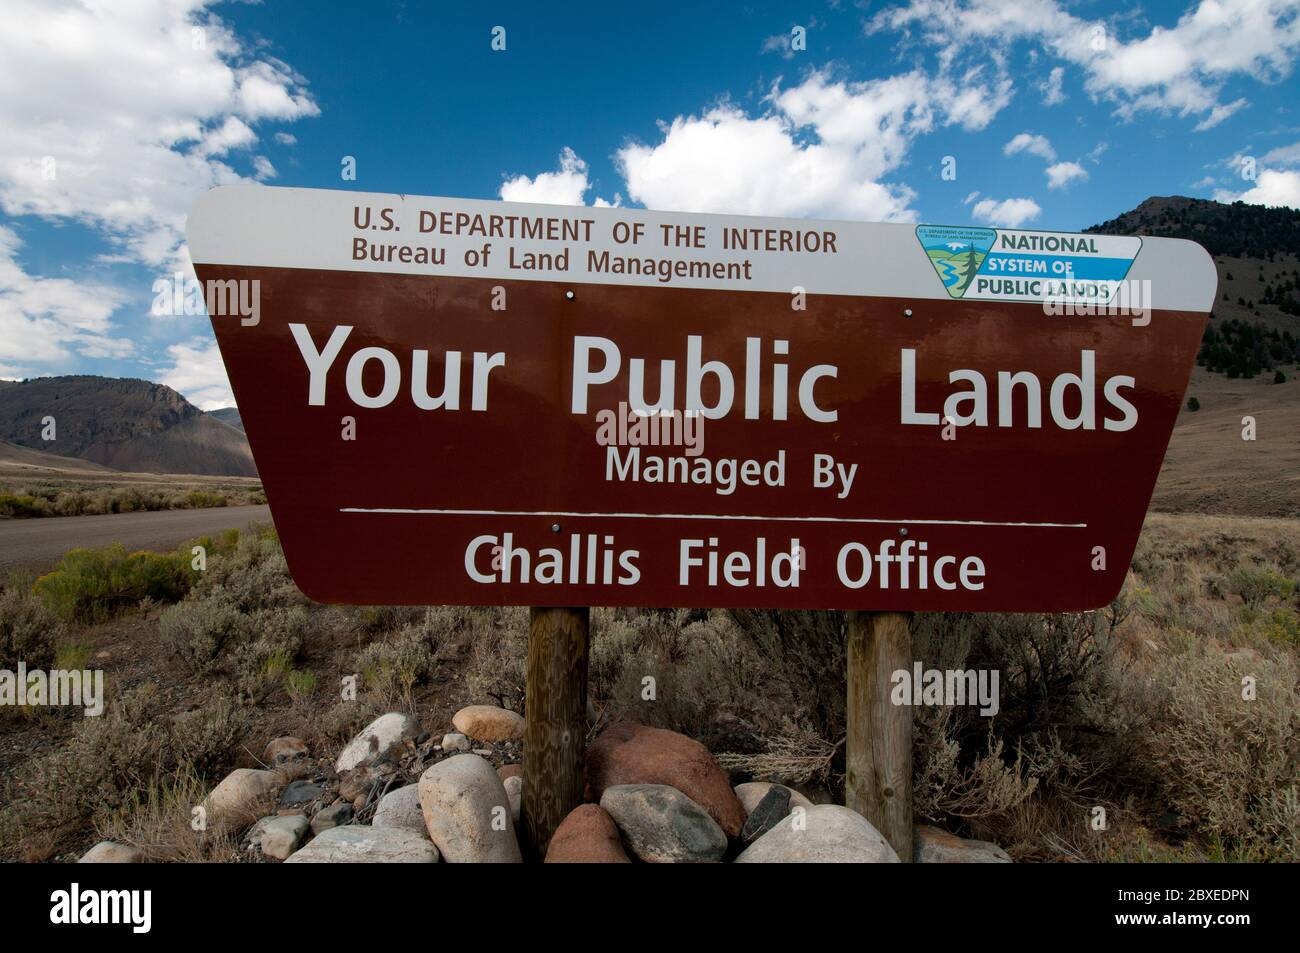 Bureau of Land Management public lands sign in Custer County near Copper Basin, ID Stock Photo